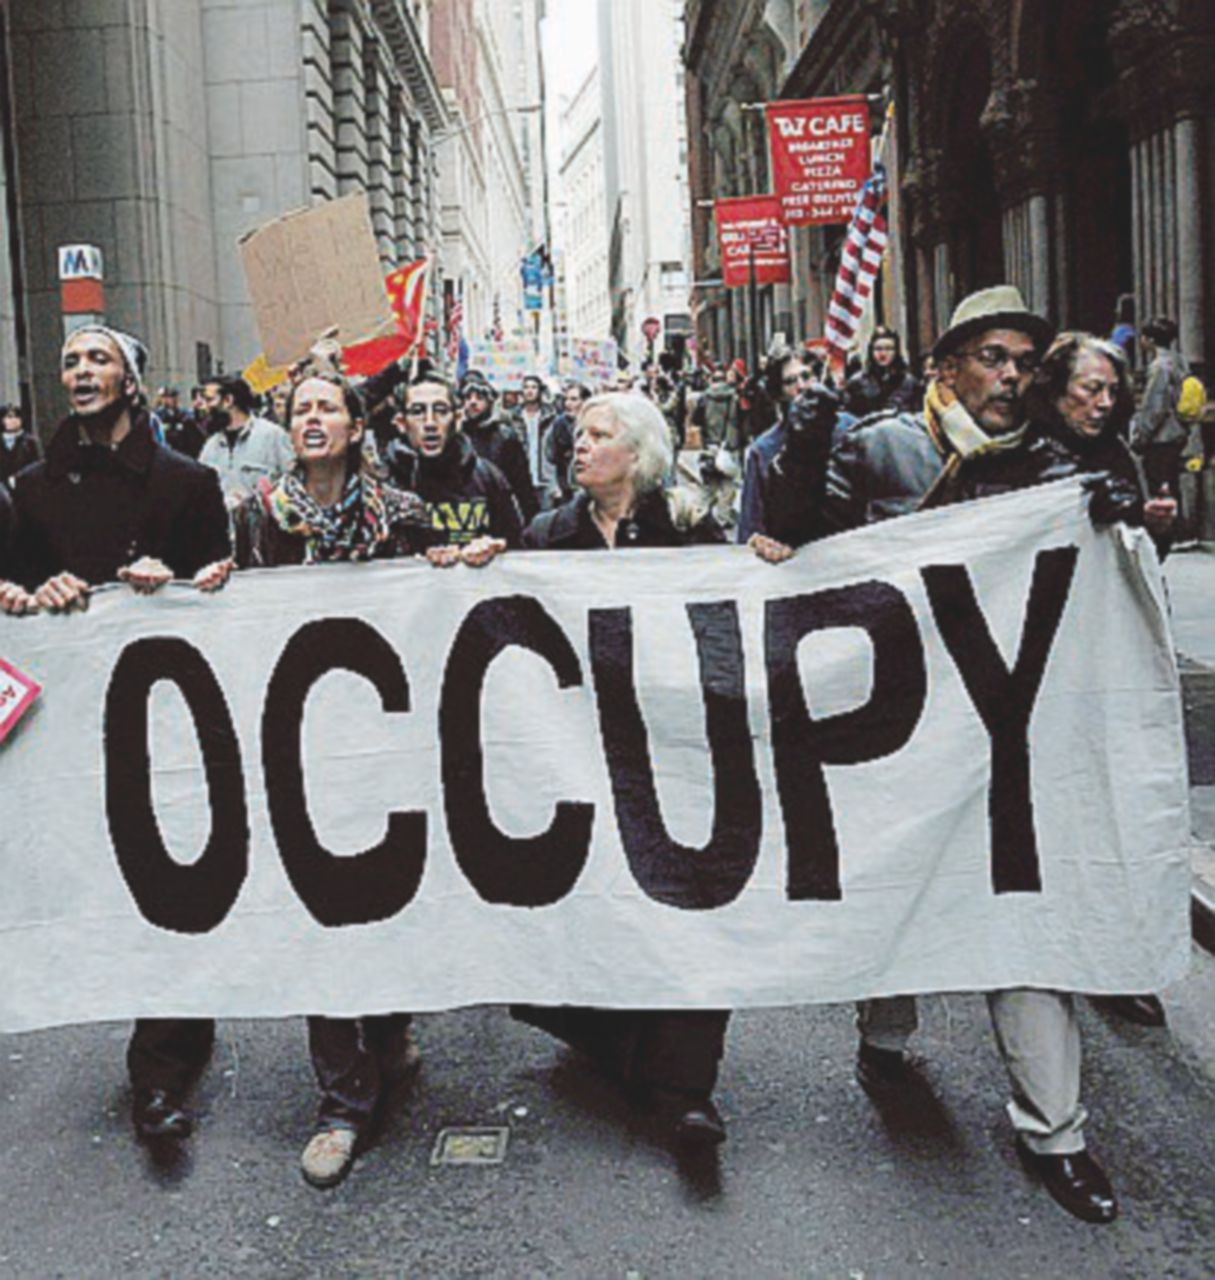 Da Occupy Wall Street a Occupy Trump